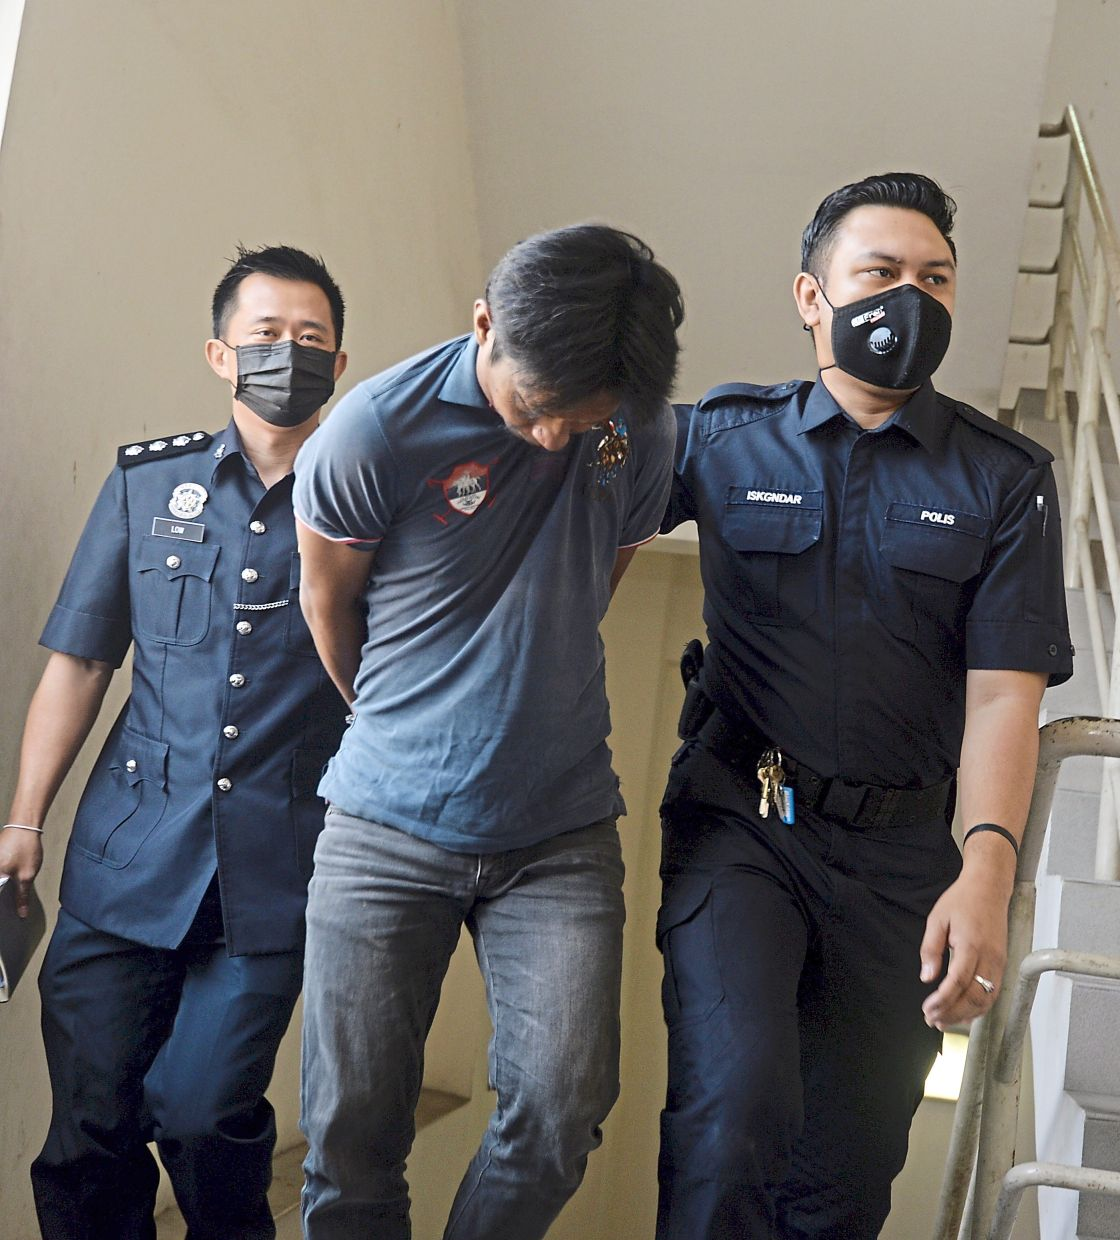 Facing the law: Police officers escorting Mohamed Badruldin to the Magistrate's Court in Petaling Jaya. — SS KANESAN/The star